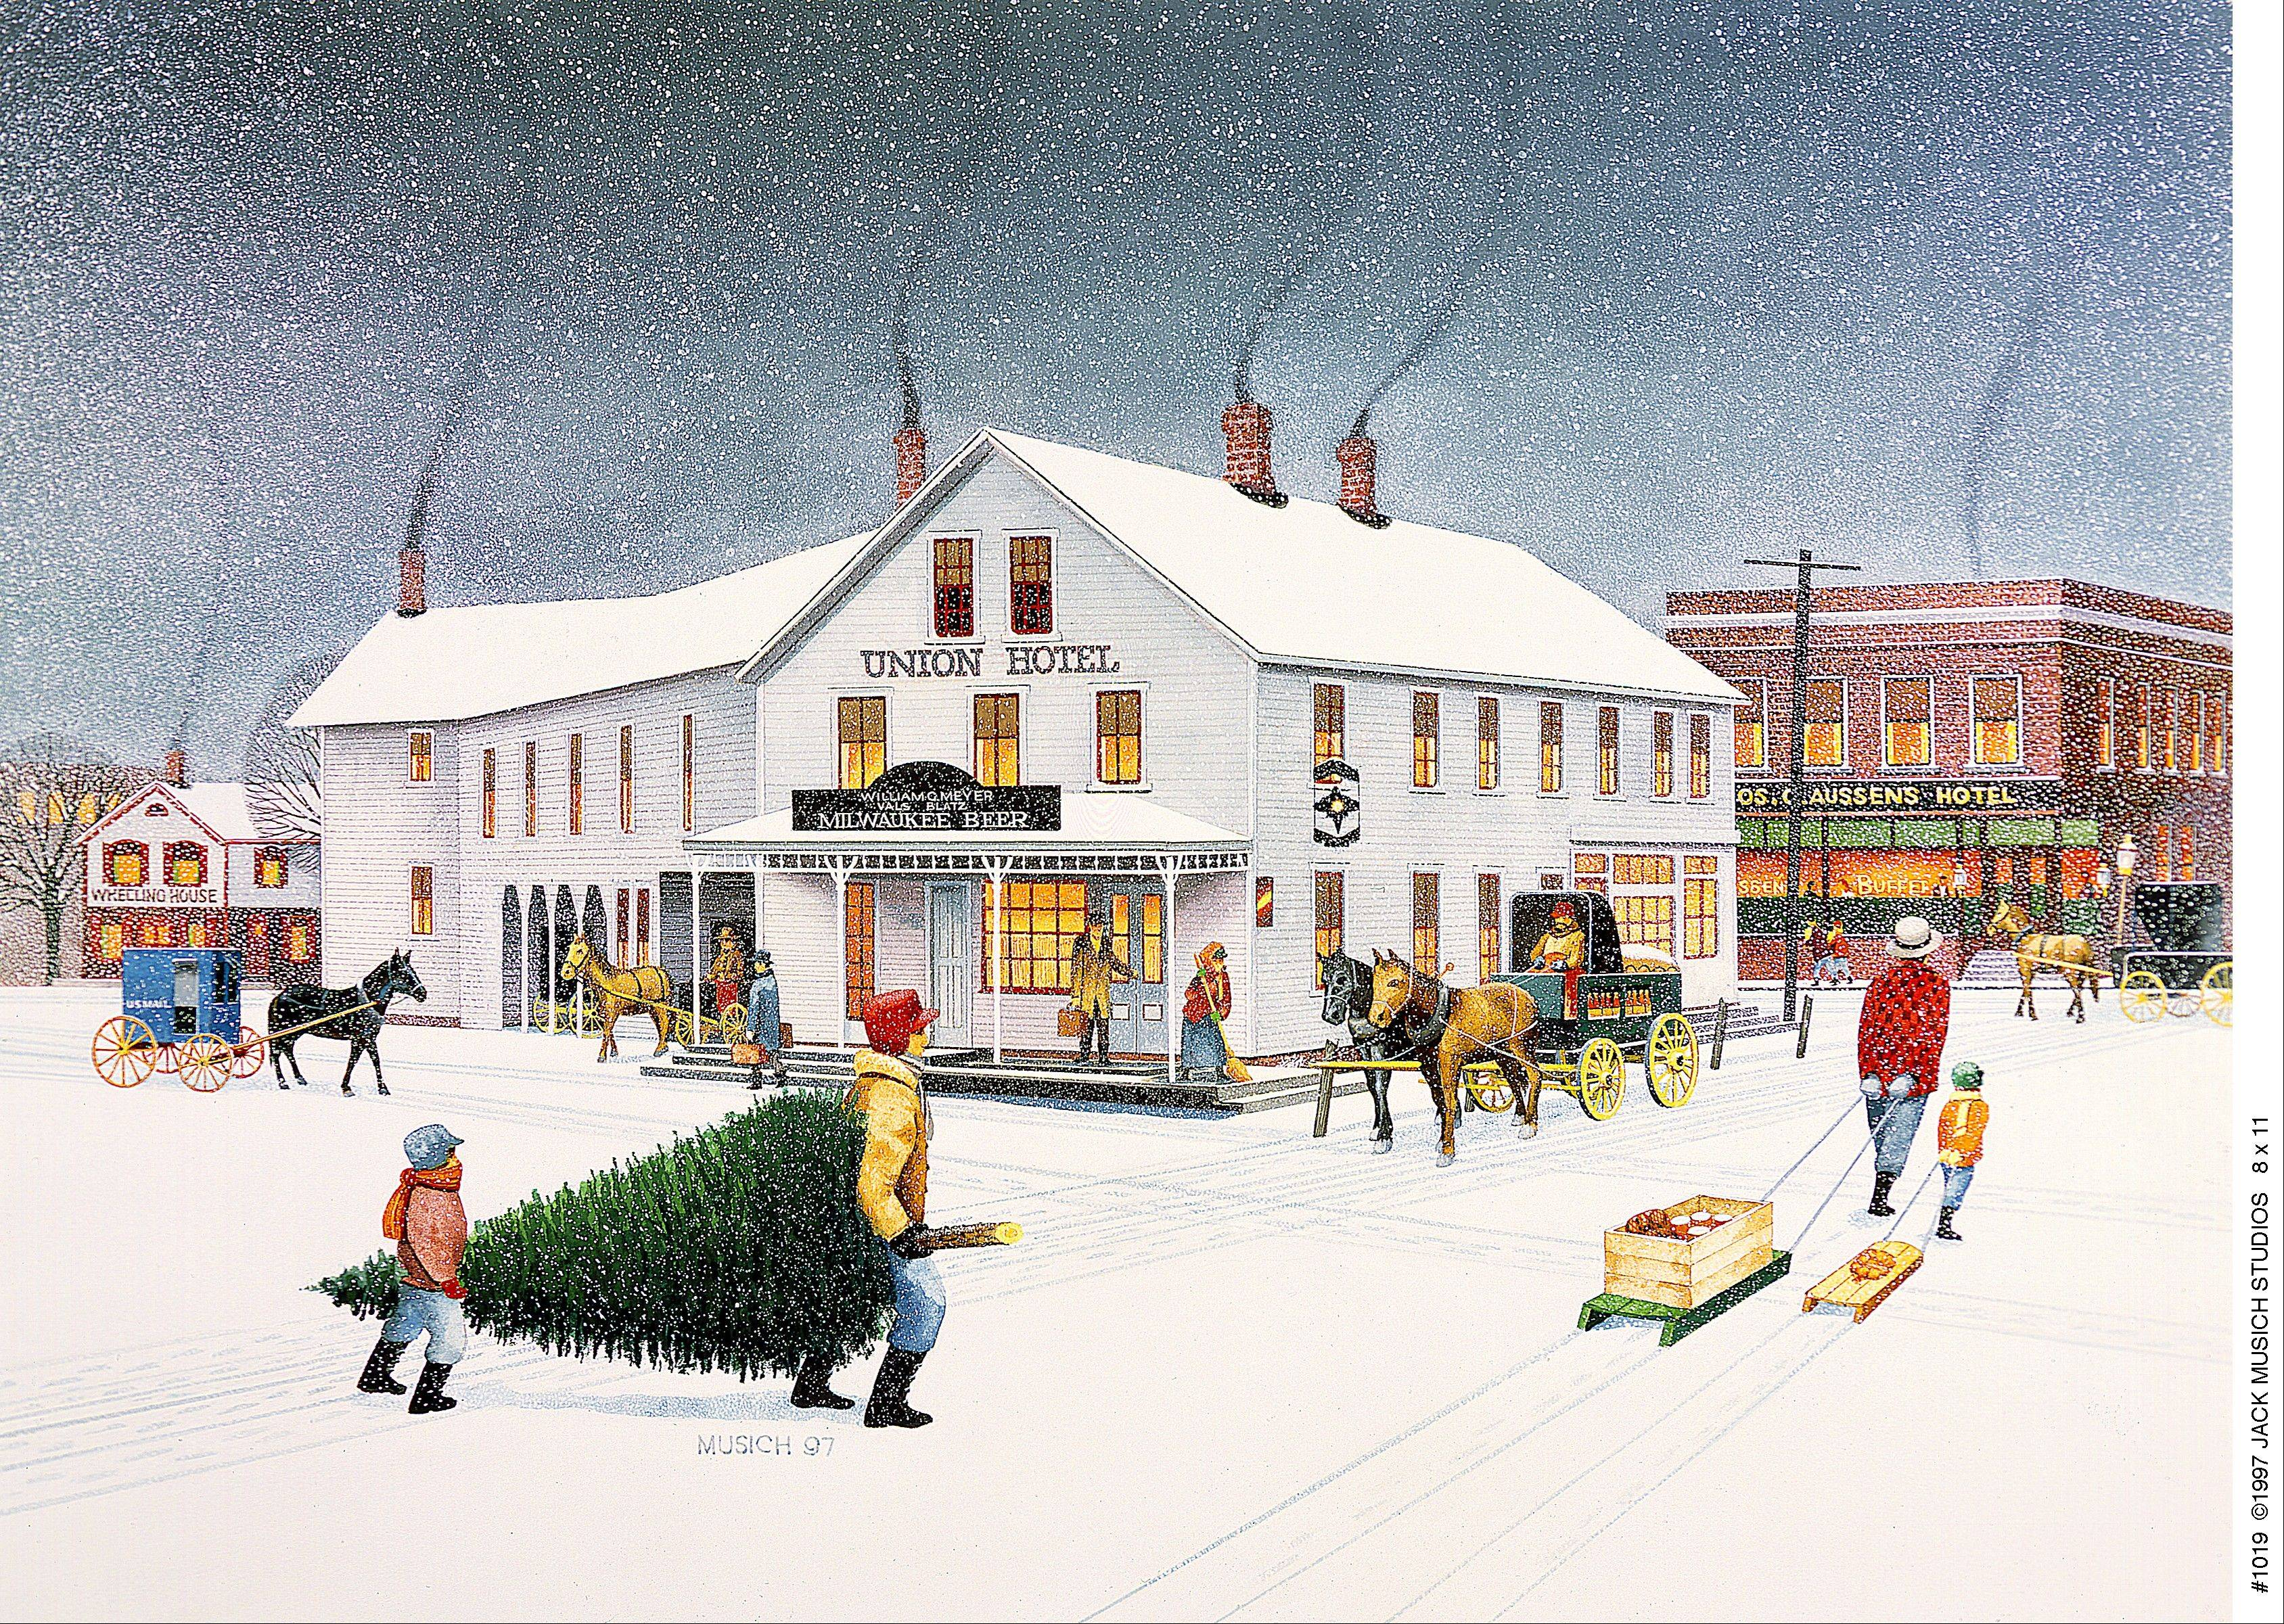 This painting by Jack Musich depicts Arlington Heights around the mid-1800s. The Union Hotel is in the background.